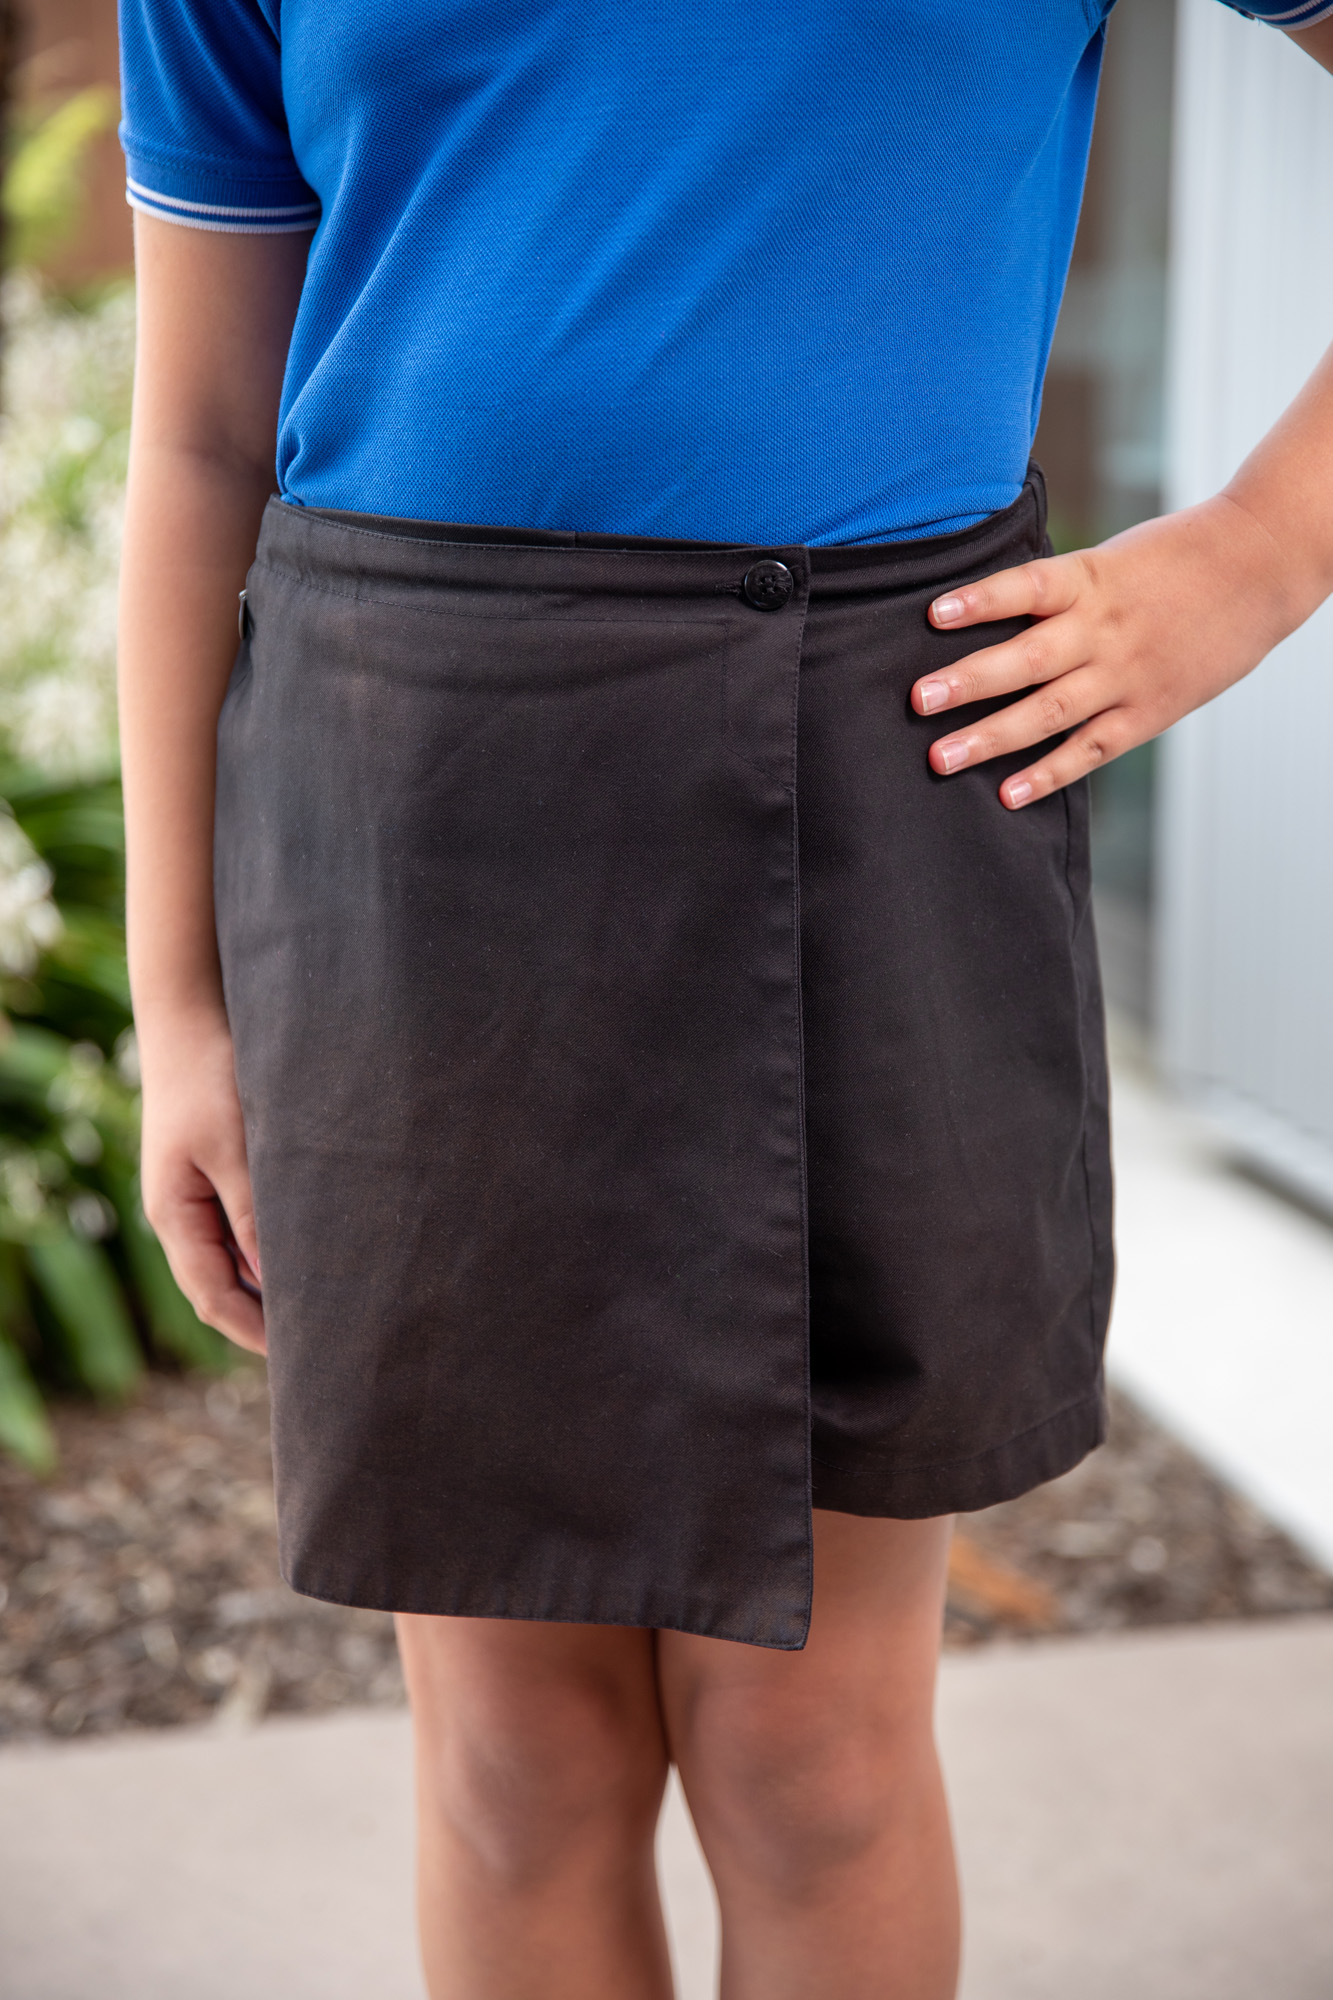 female Wigram Primary pupil wearing black skorts with arm on her hip